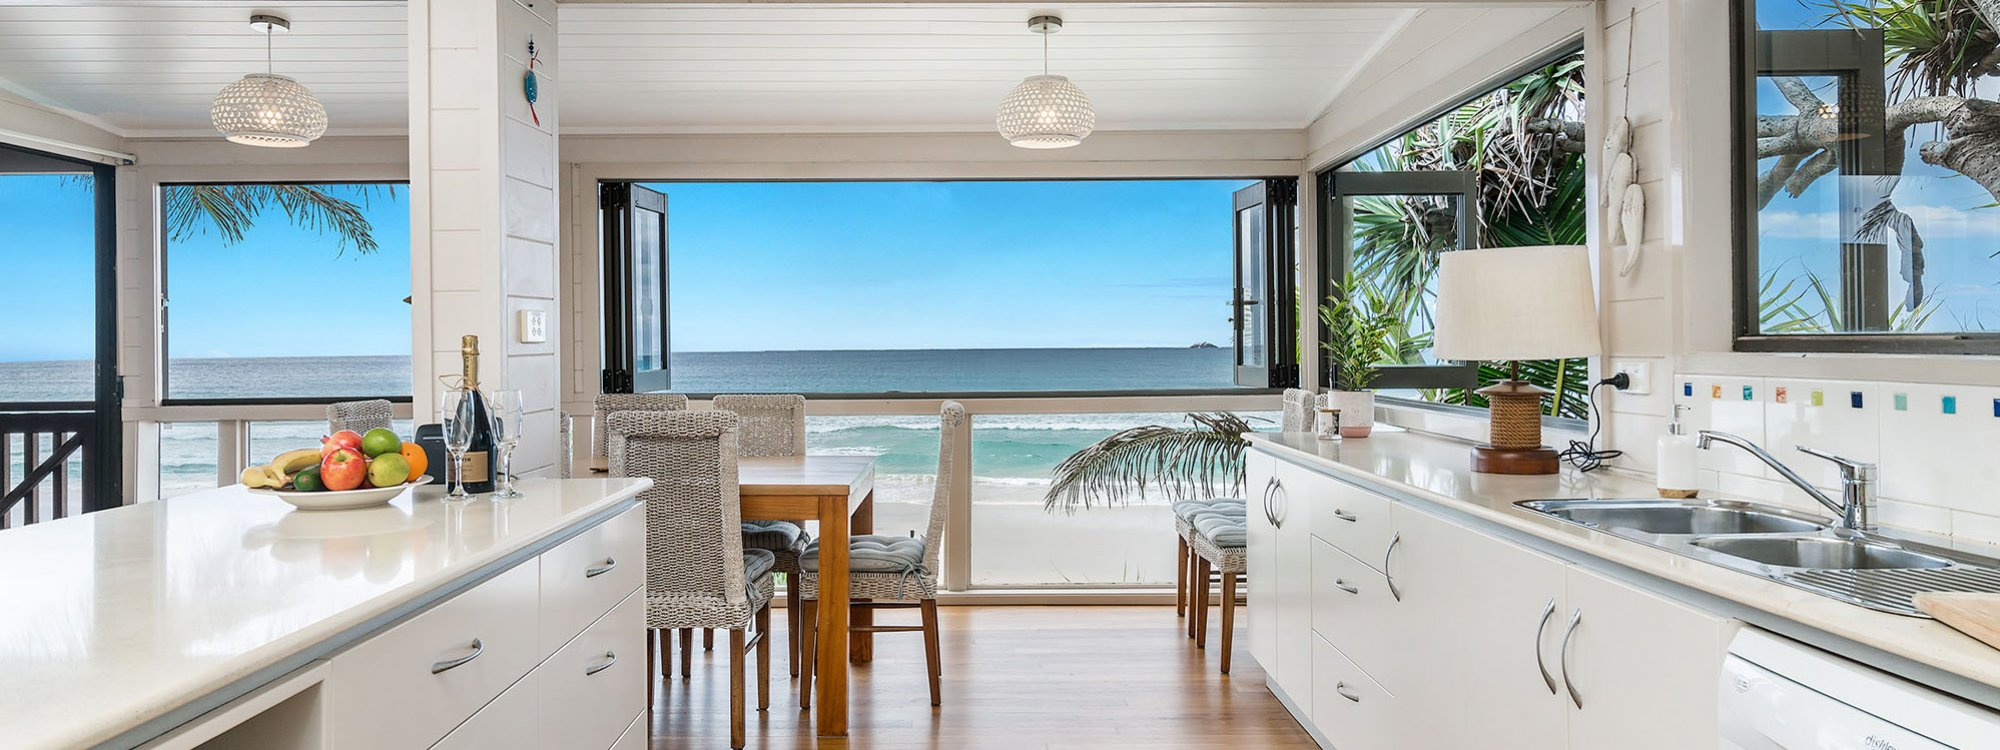 Moonstruck - Byron Bay - Kitchen Towards View